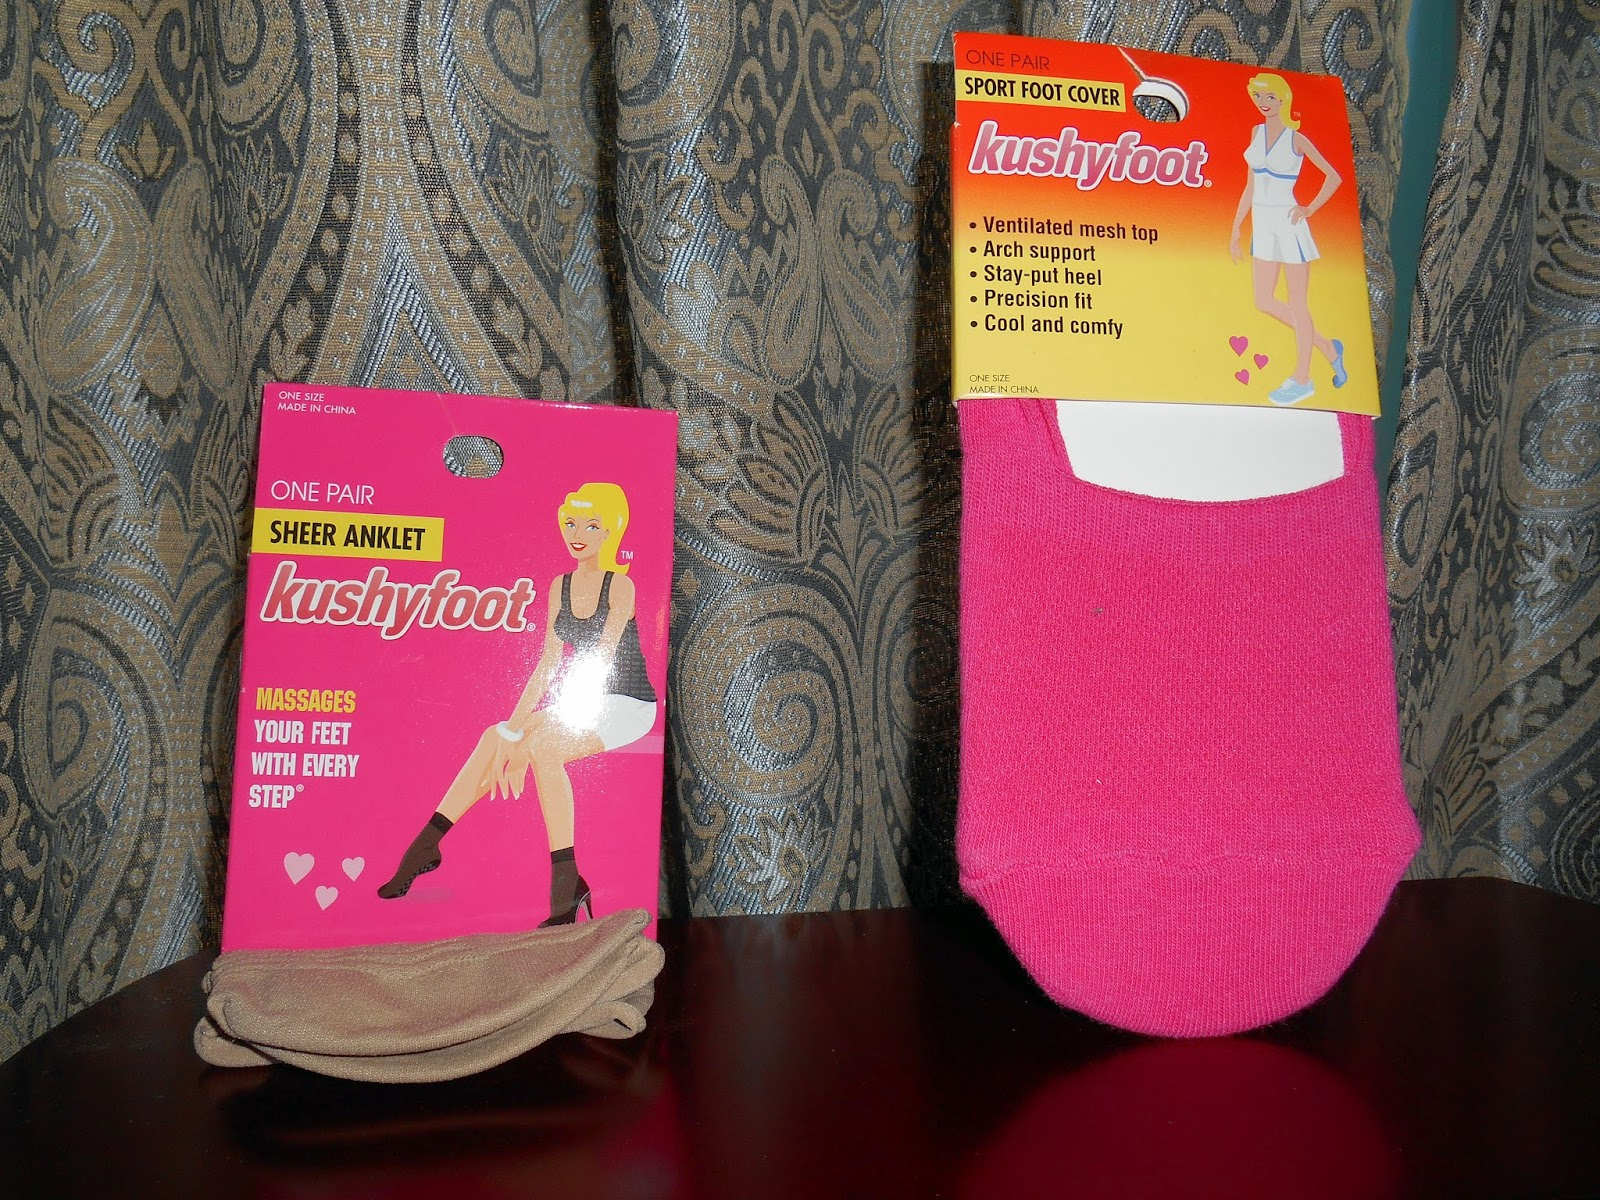 LOT OF 4 KUSHYFOOT Pink Sport Foot Covers~One Size~Massages Feet~Arch Support